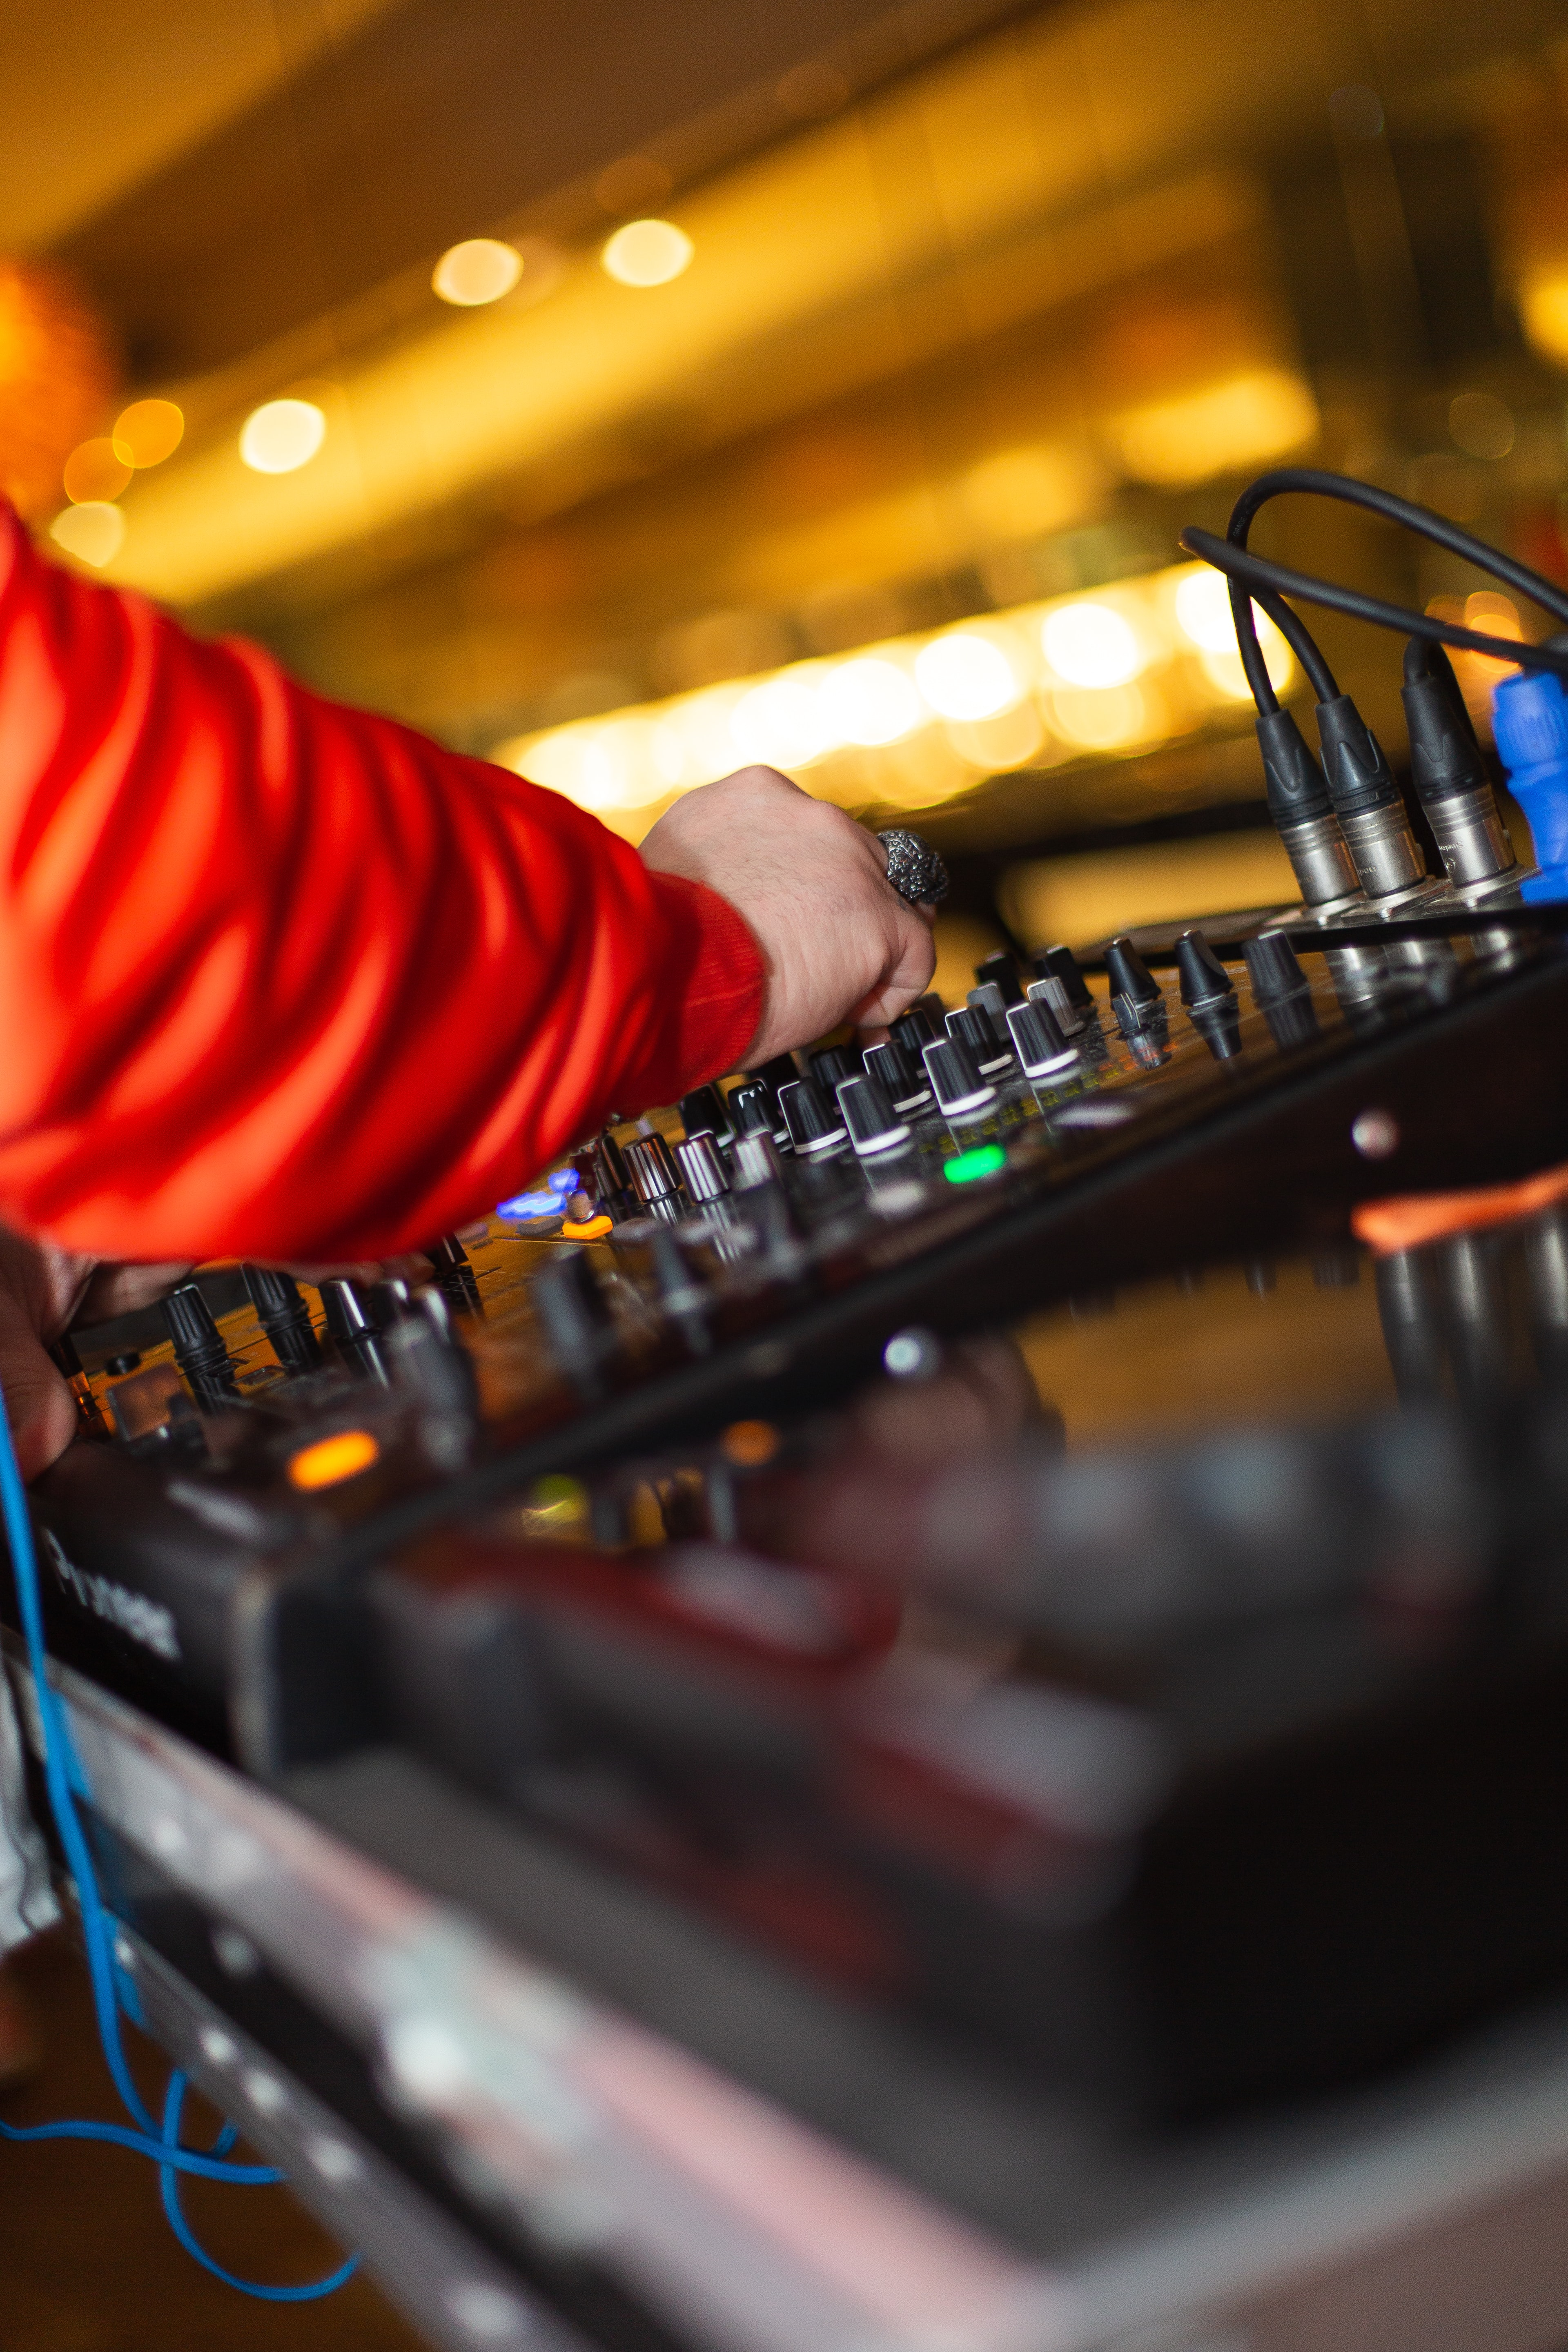 92791 download wallpaper Music, Hand, Dj, Equipment, Apparatus screensavers and pictures for free